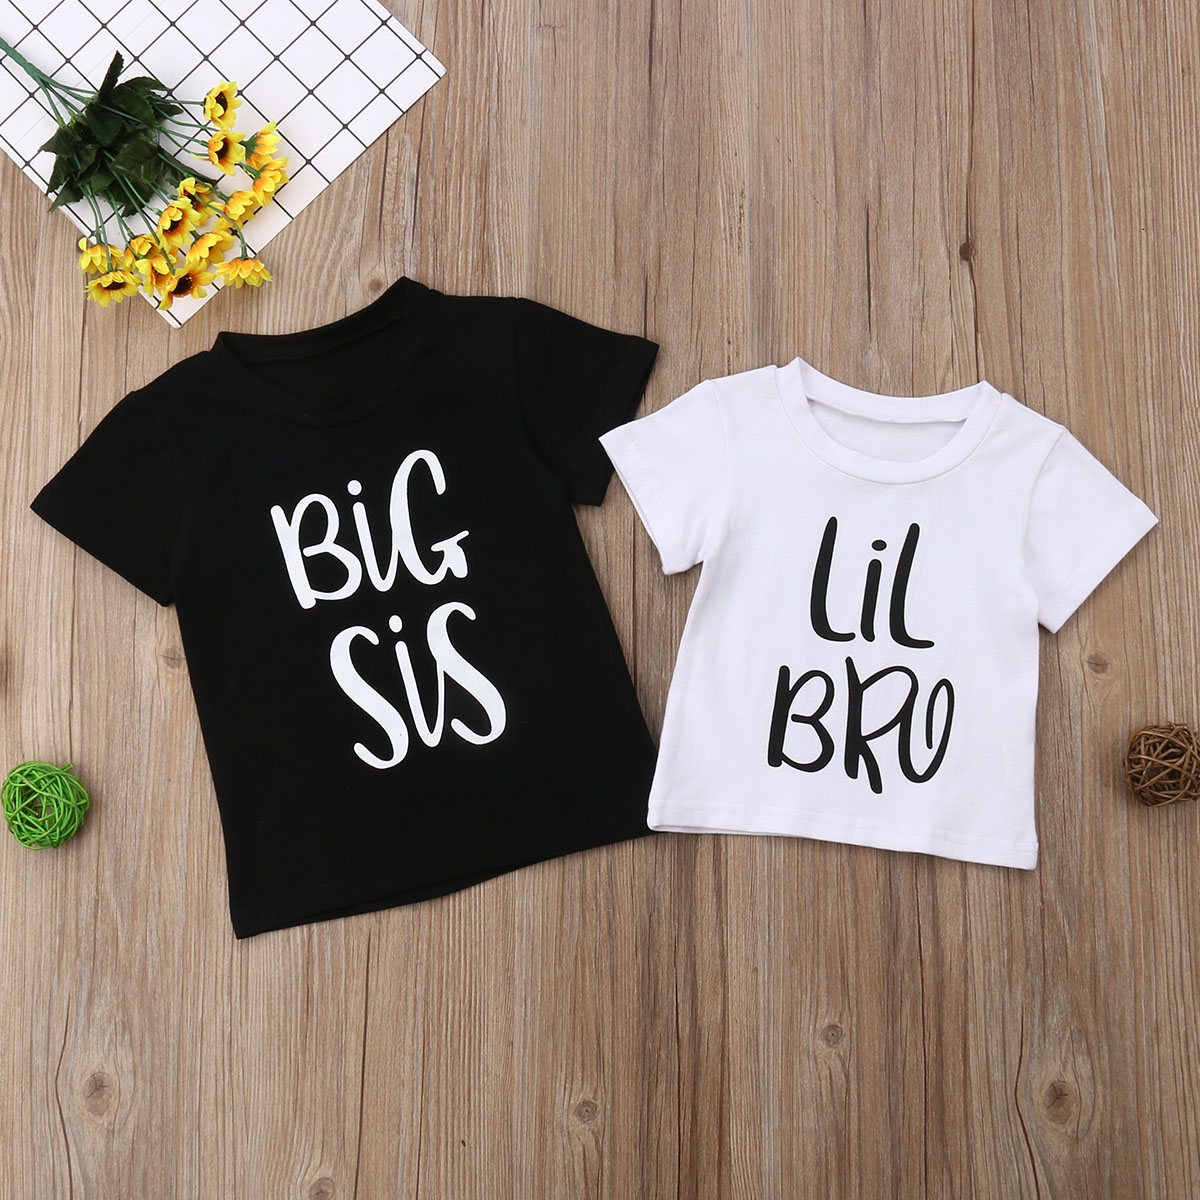 Family Matching Summer T-<font><b>shirt</b></font> Big Sister and Littler Brother Boy Girl Cotton Short Sleeve <font><b>Twins</b></font> Tops Tee image